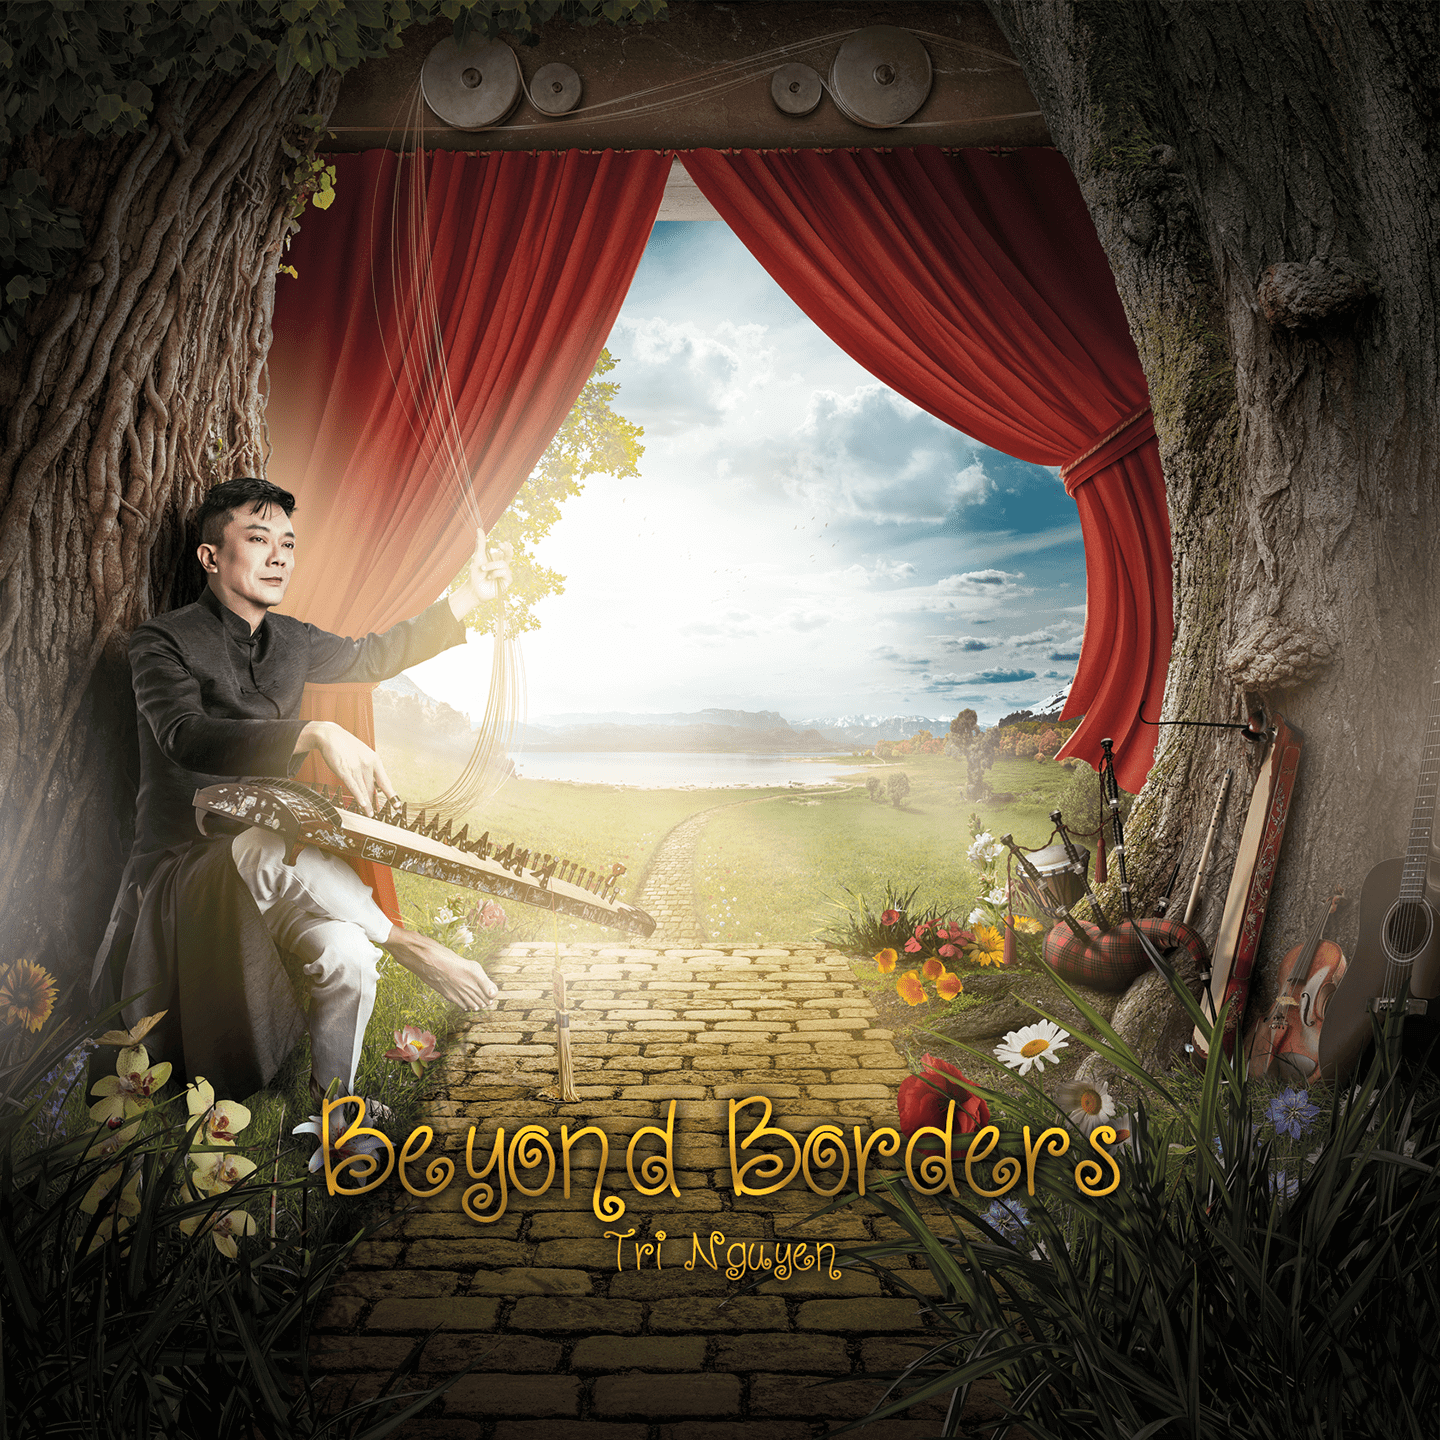 beyond-borders-iTunes-min